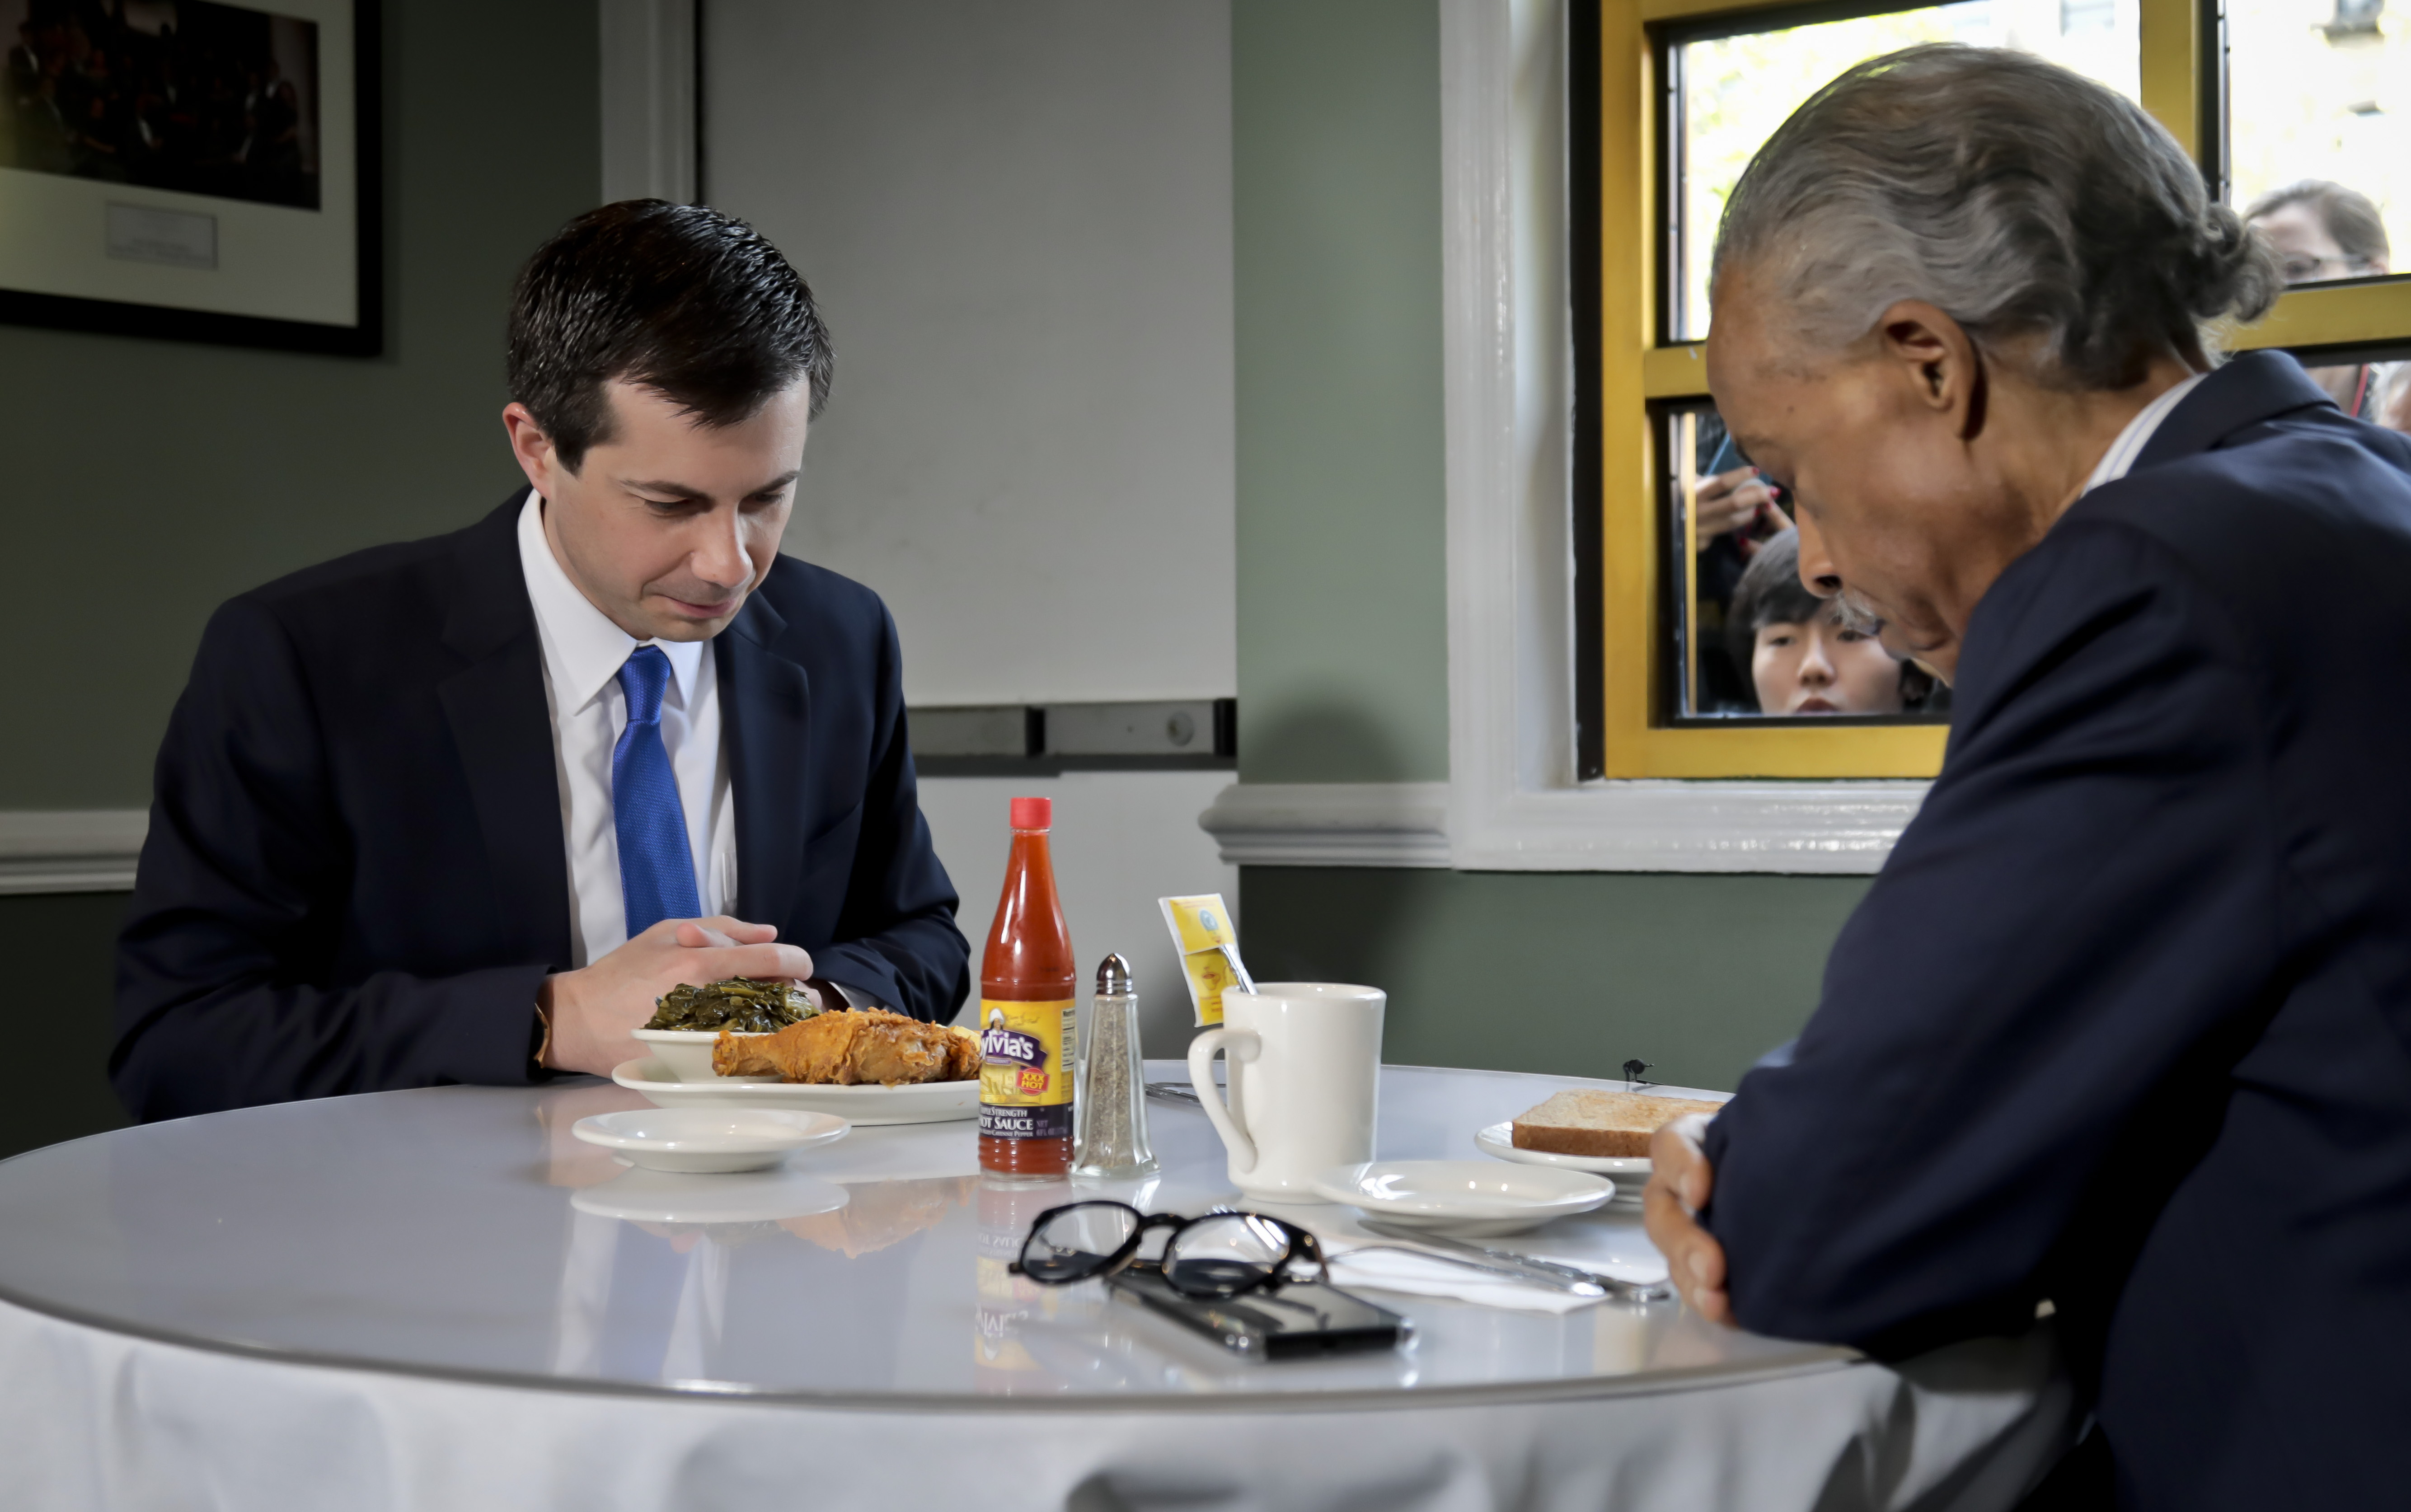 Democratic presidential candidate Mayor Pete Buttigieg (L) of South Bend, Indiana and civil rights leader Rev. Al Sharpton (R), President of National Action Network, hold a lunch meeting at Sylvias Restaurant in Harlem, New York, Monday, April 29, 2019. (Photo by Bebeto Matthews / POOL / AFP) (Photo credit should read BEBETO MATTHEWS/AFP/Getty Images)